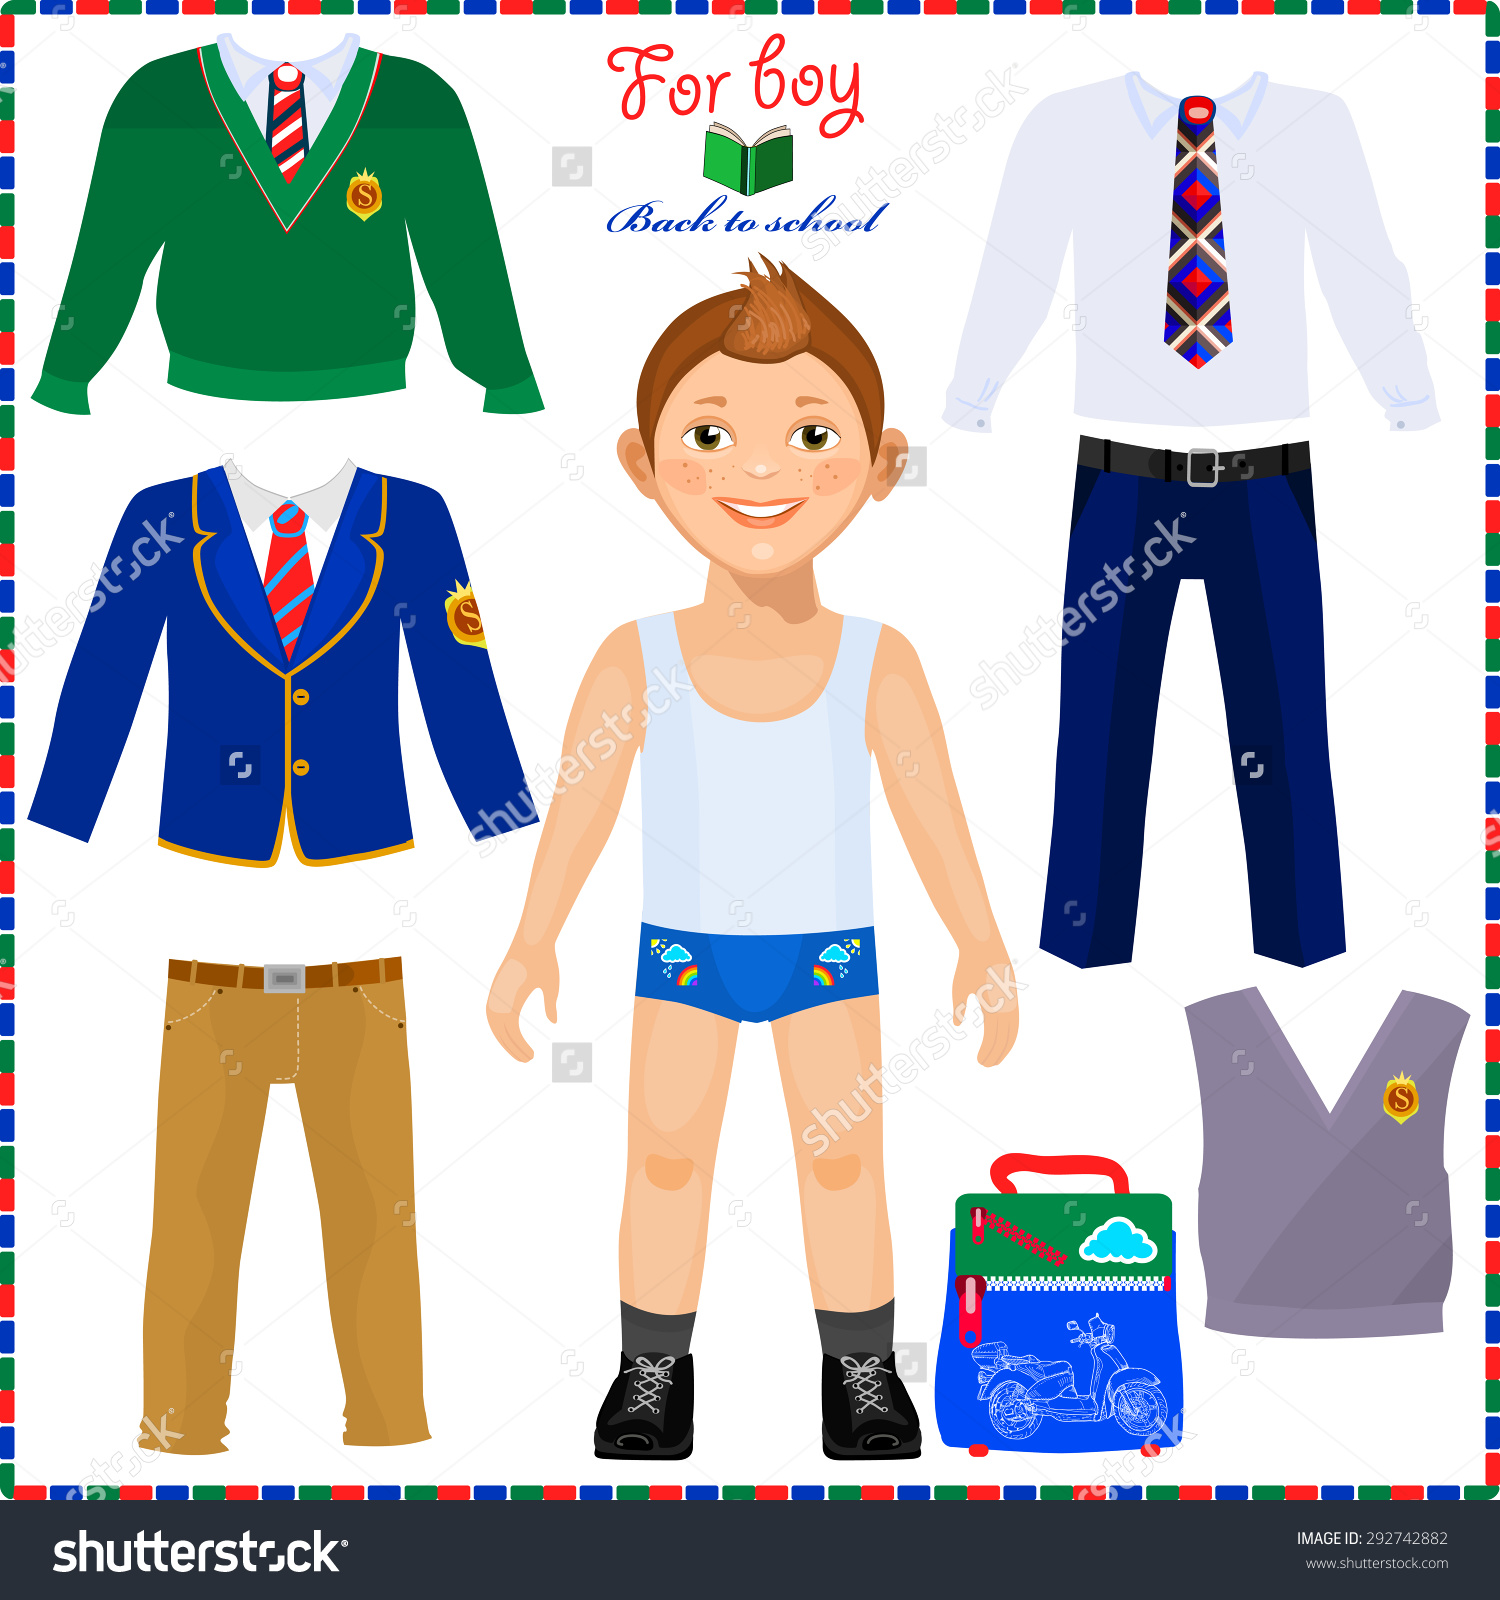 Back To School Outfit Clipart.